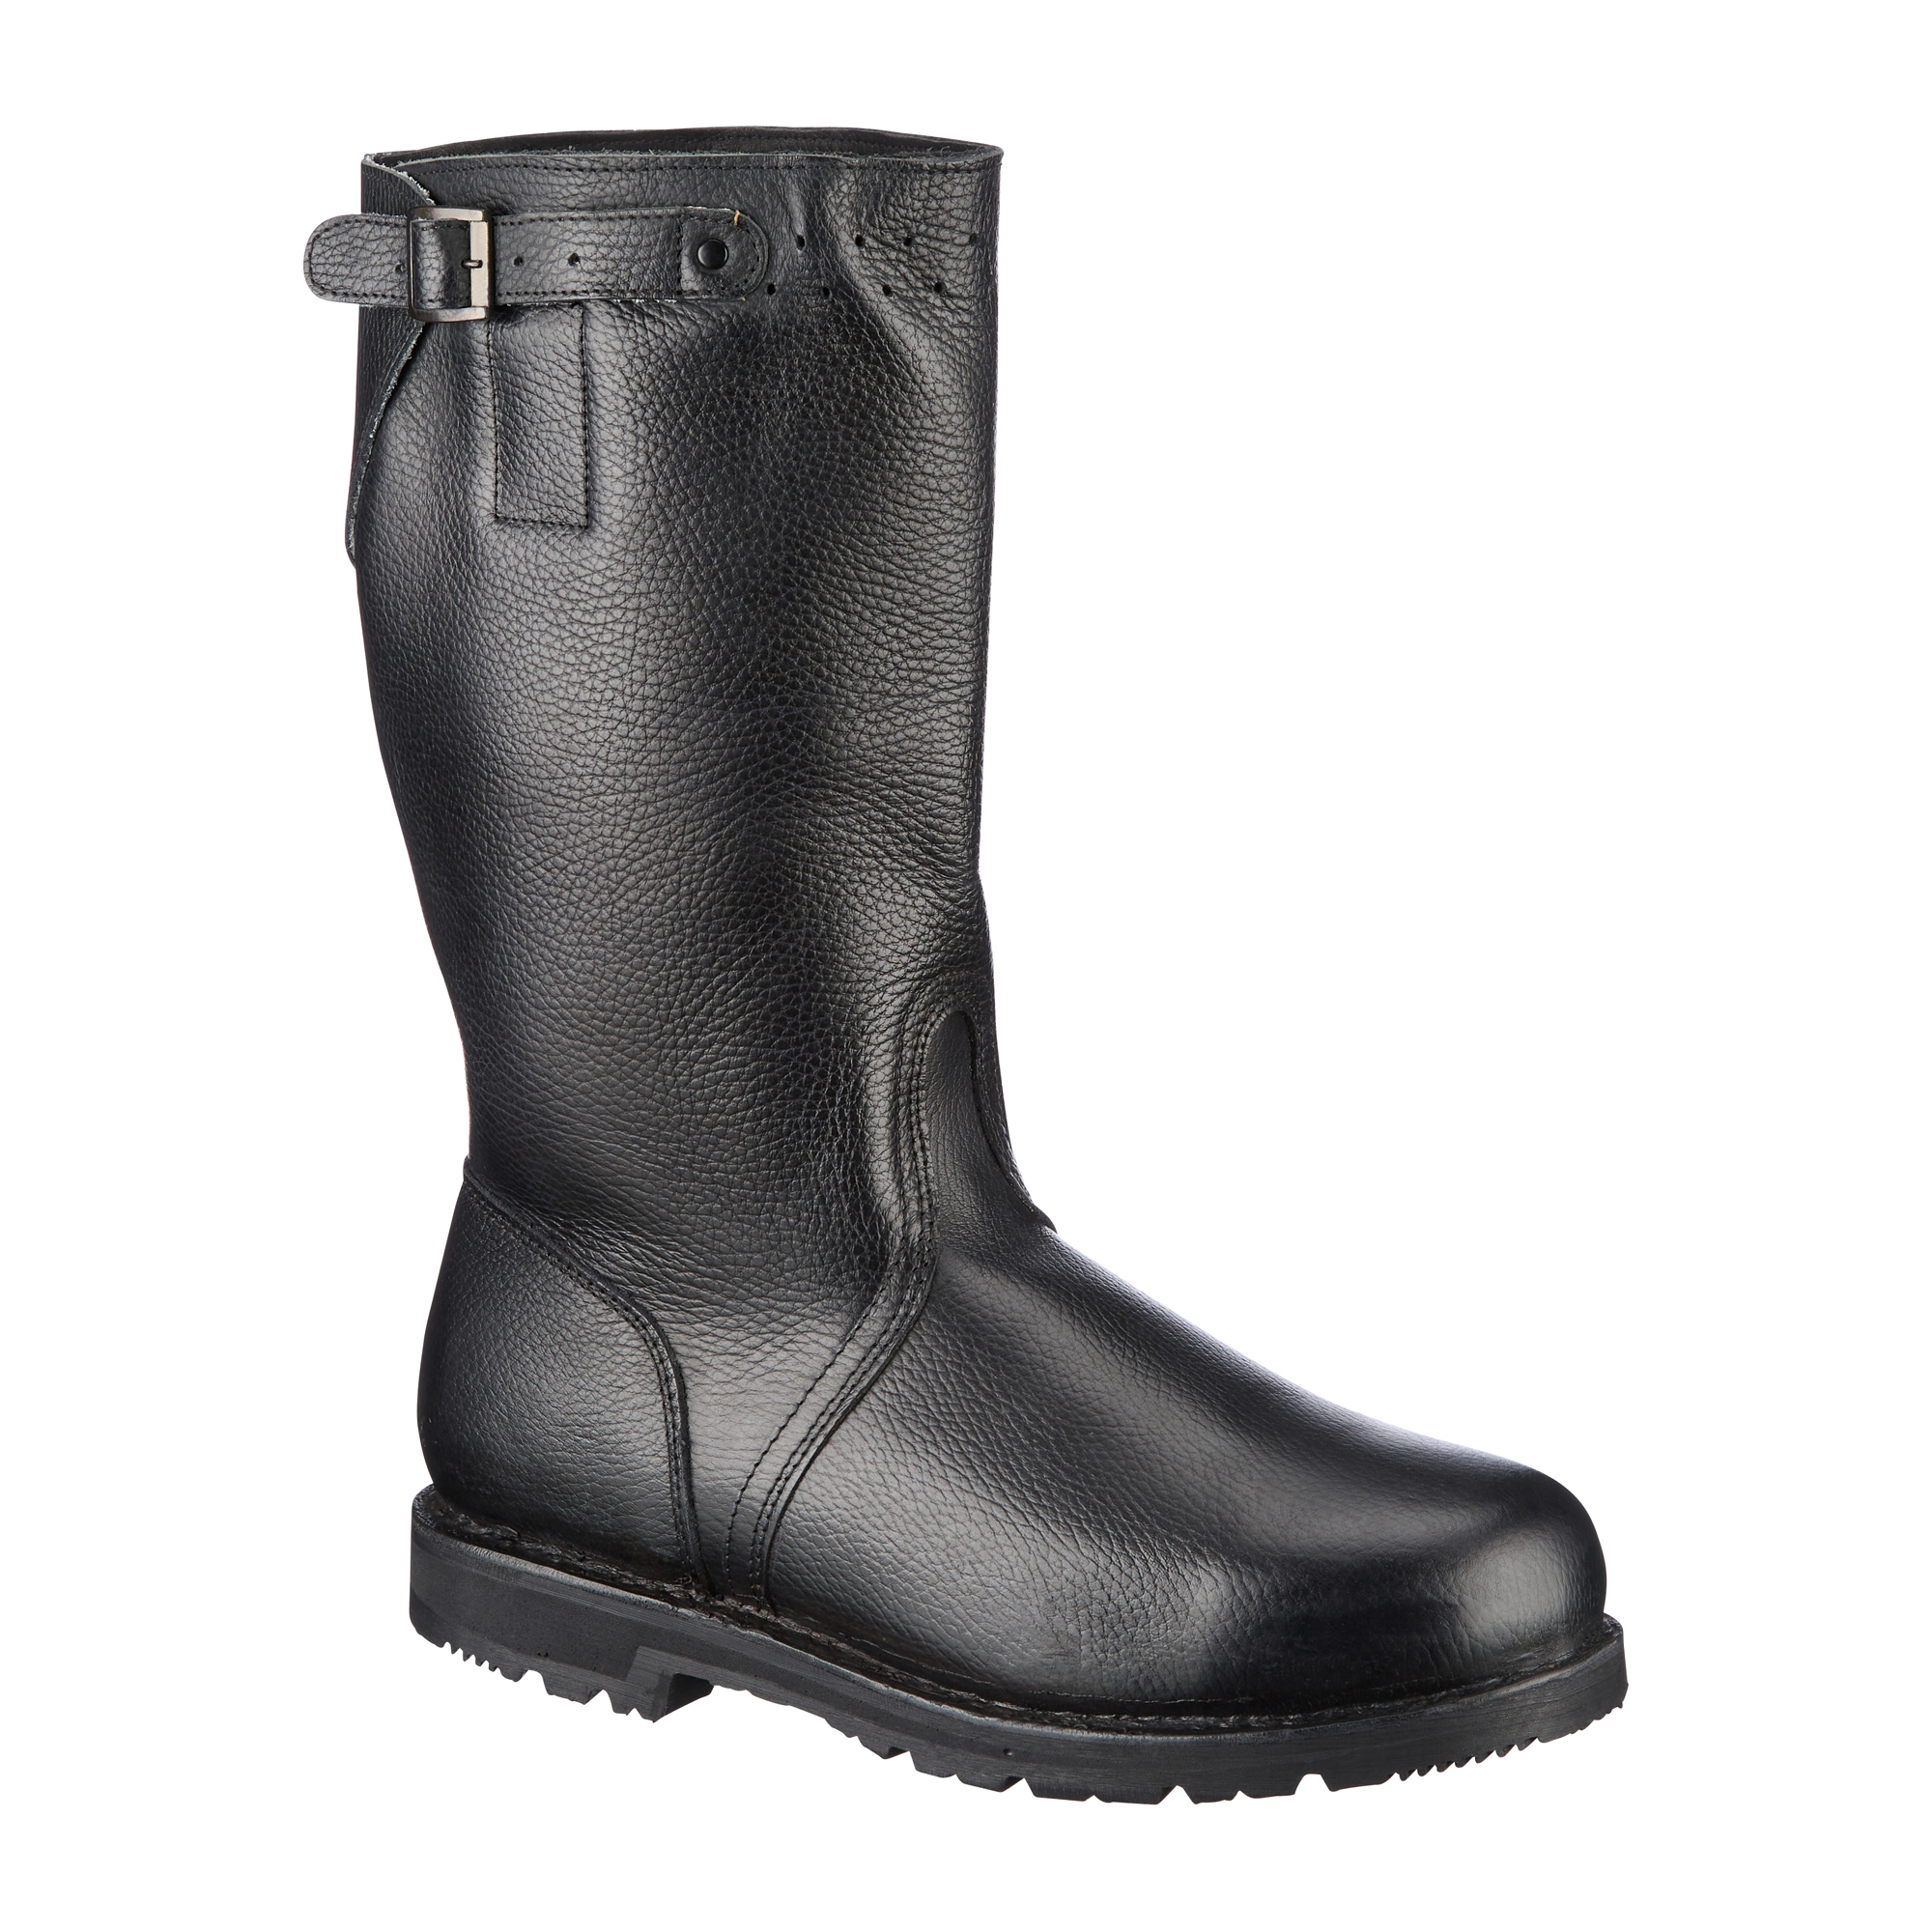 BW Navy Sea Boots Like New by ASMC